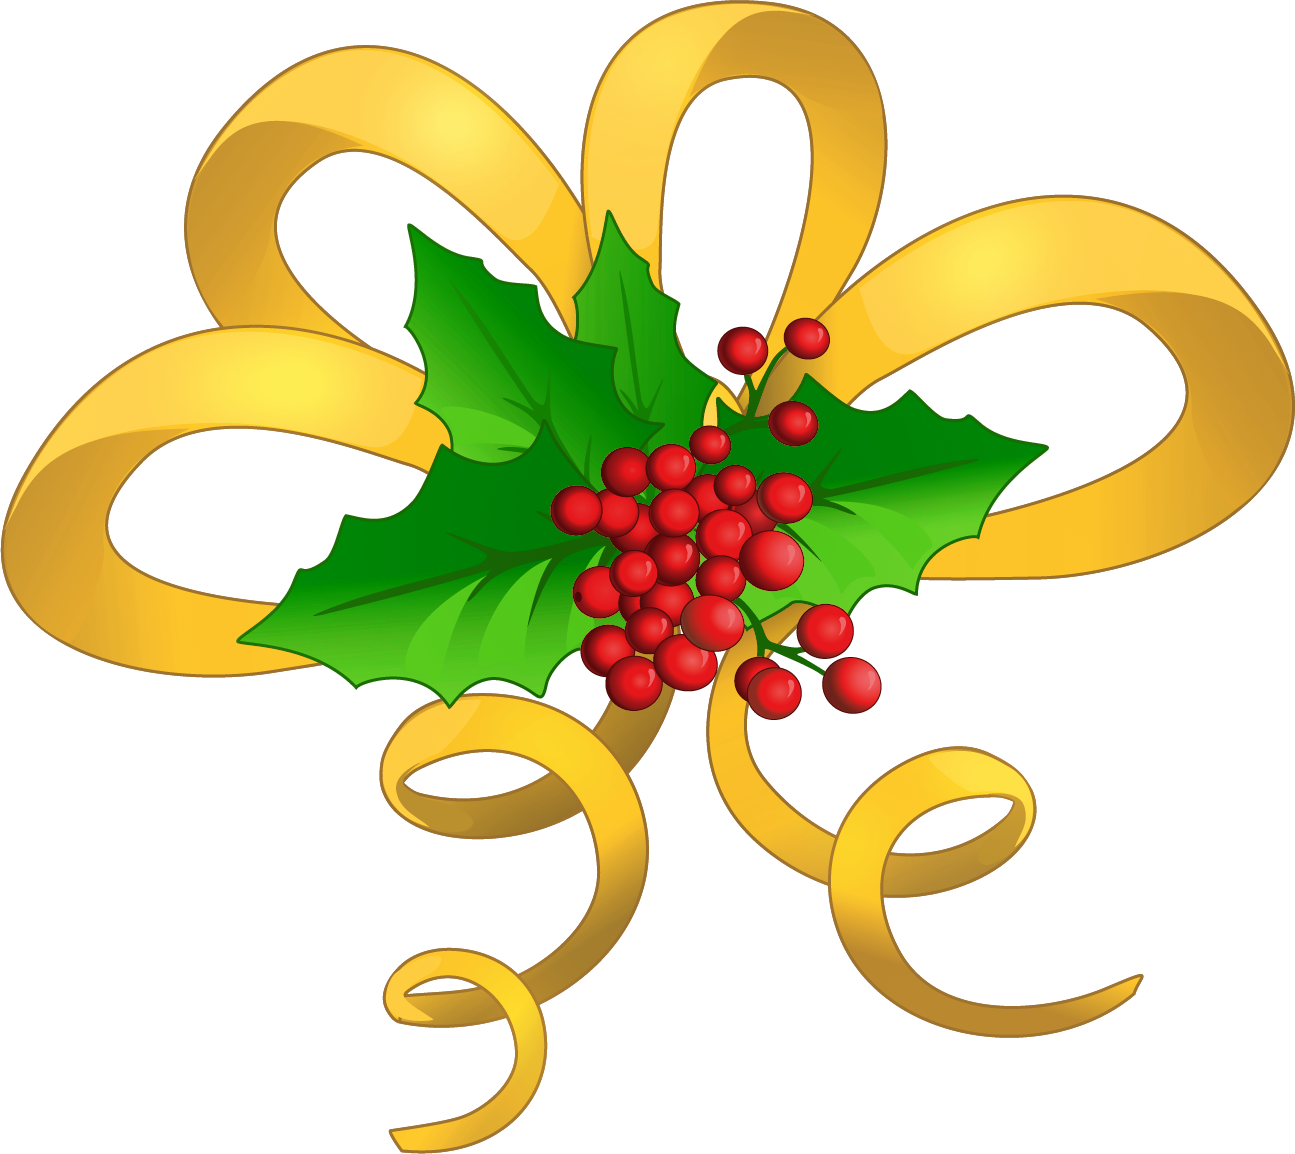 1295x1154 Christmas Yellow Bow With Mistletoe Png Clipartu200b Gallery